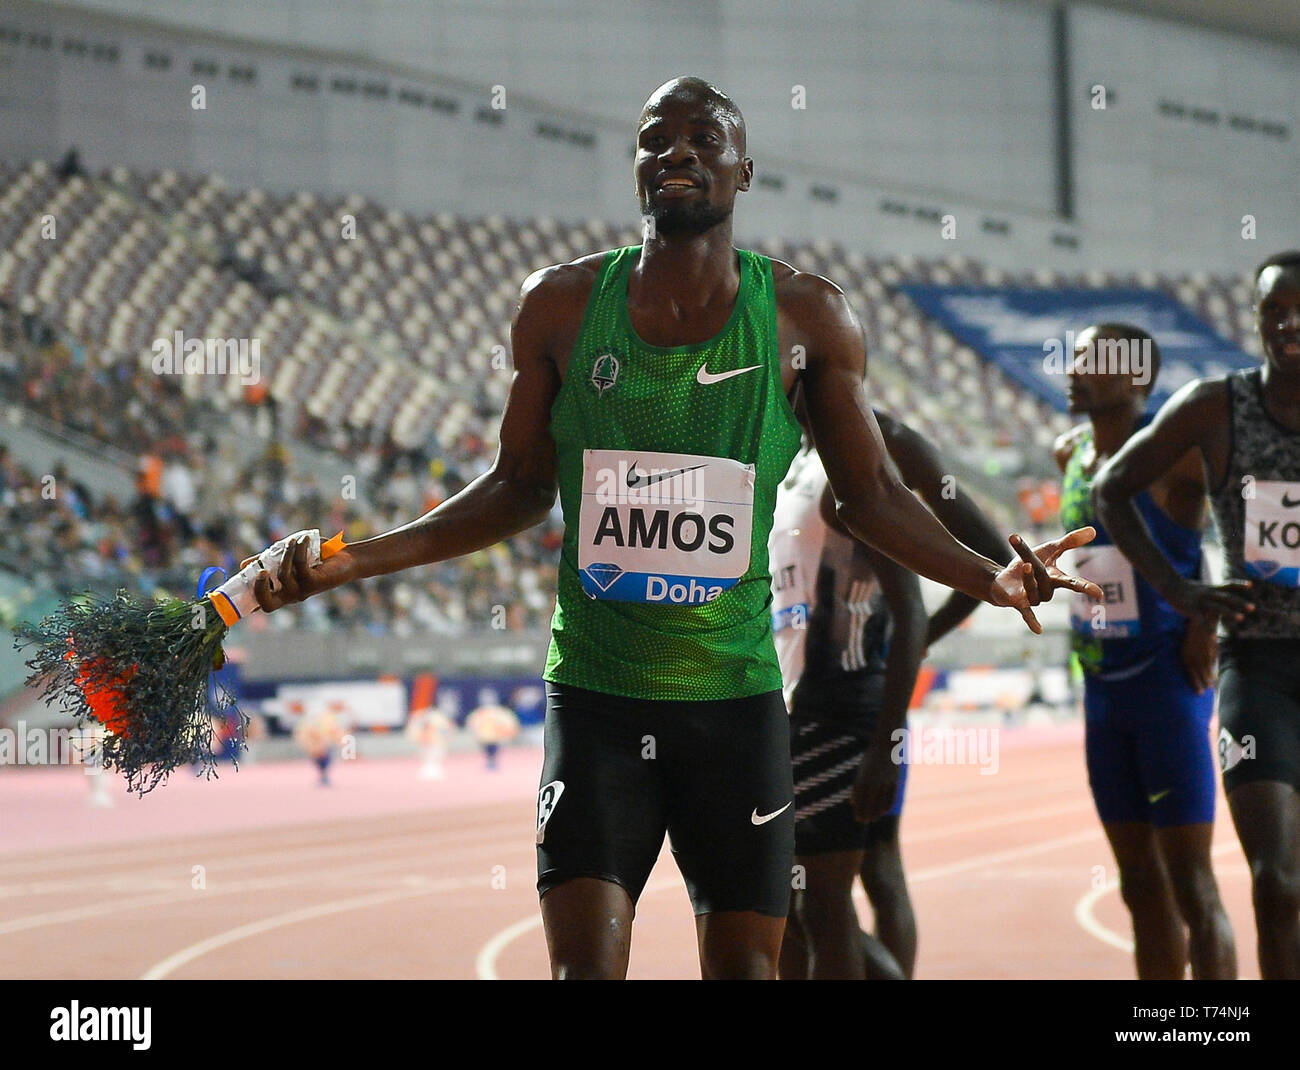 Doha, Qatar. 3rd May, 2019. Nijel Amos of Botswana celebrates after the men's 800m final at 2019 IAAF Diamond League at Khalifa International Stadium in Doha, Qatar, May 3, 2019. Nijel Amos won the gold medal with 1 minute and 44.29 seconds. Credit: Nikku/Xinhua/Alamy Live News - Stock Image